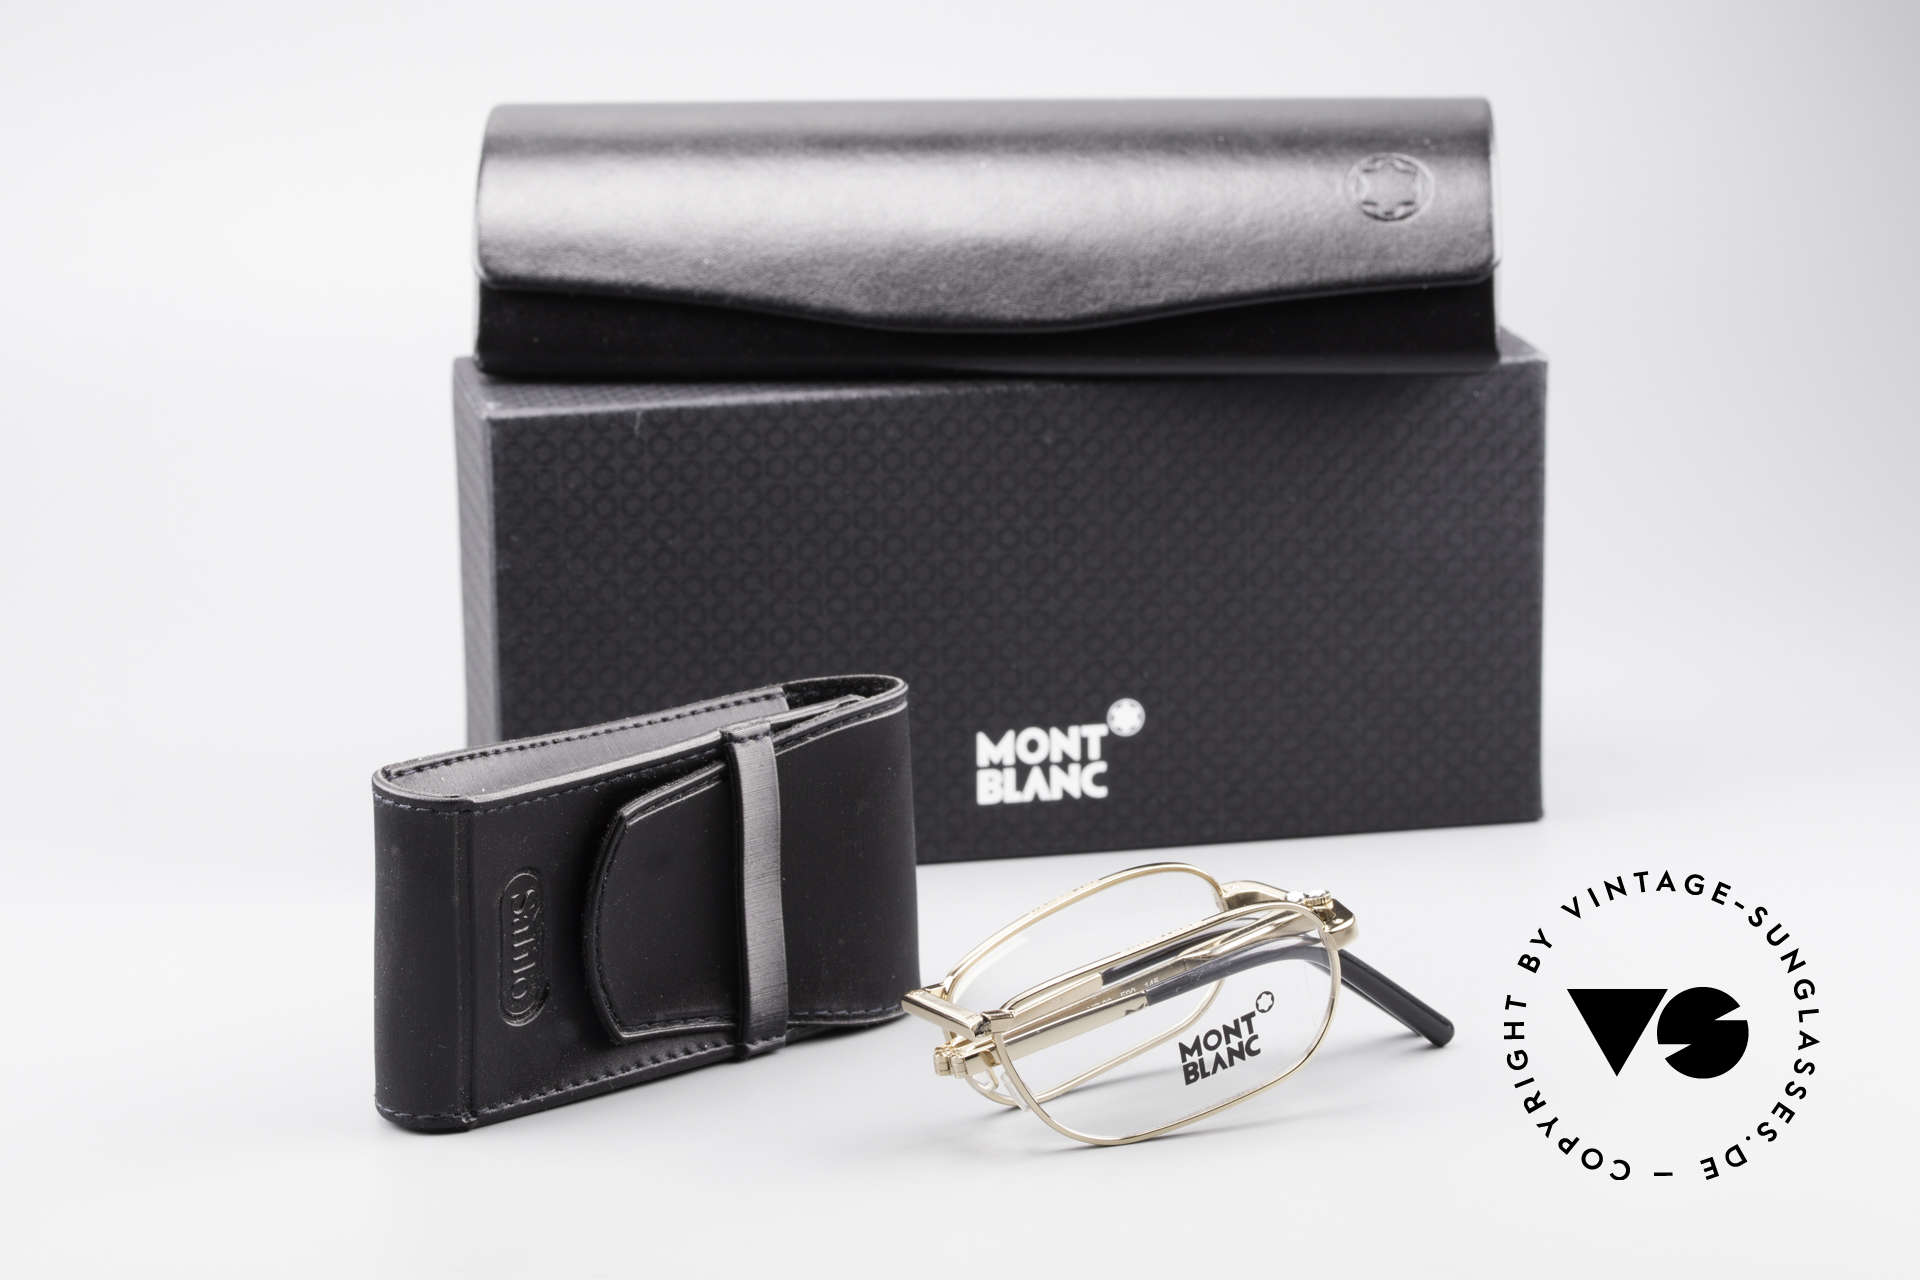 Montblanc MB30 Folding Gold Plated Luxury Eyeglasses, Size: small, Made for Men